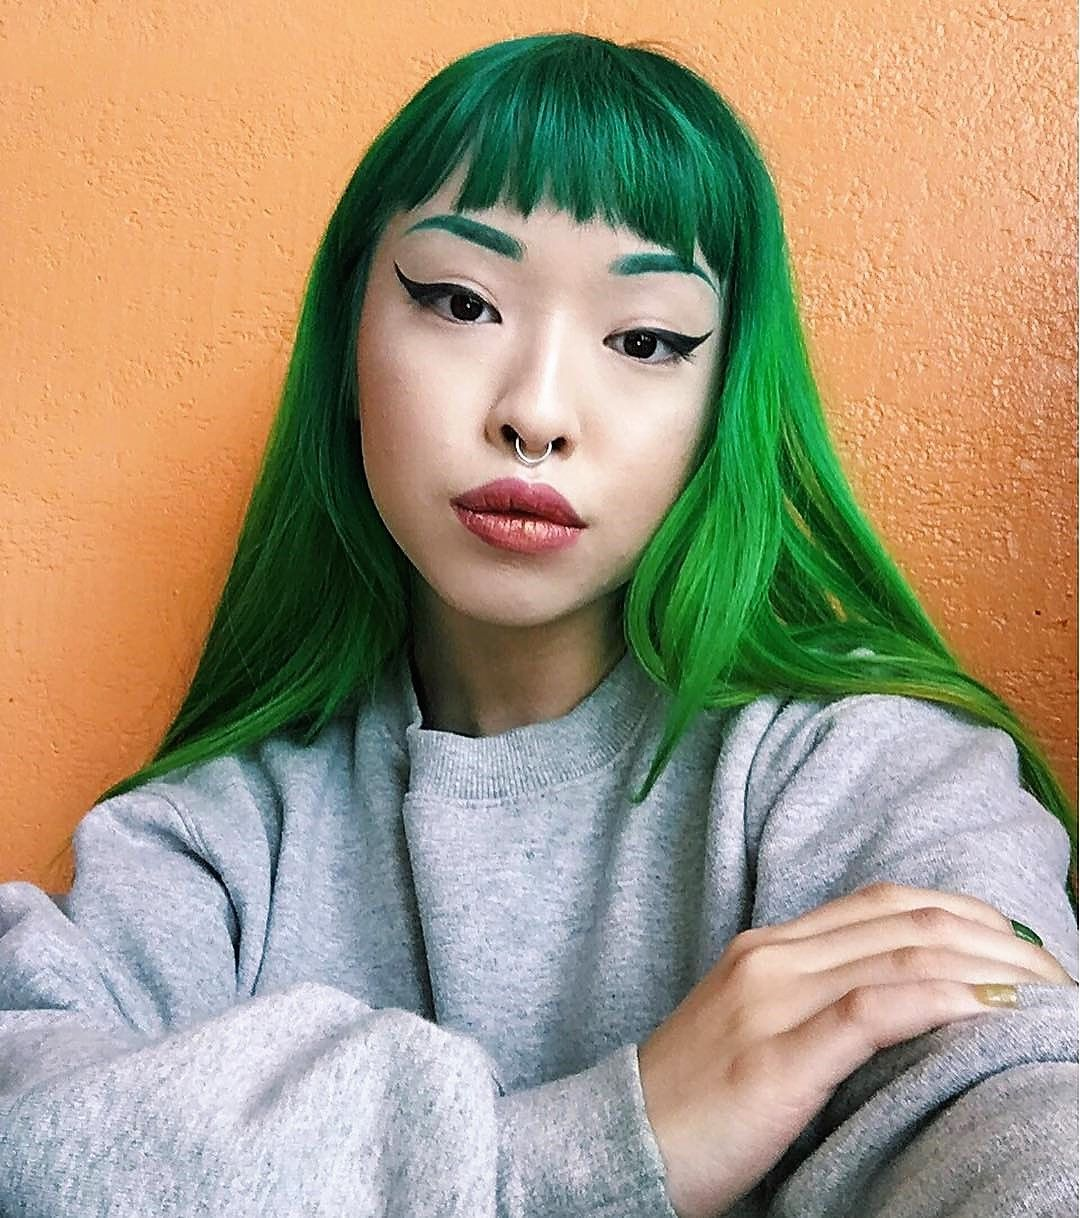 25 Green hair color ideas you have to see | Eyebrow, Bangs and Brows